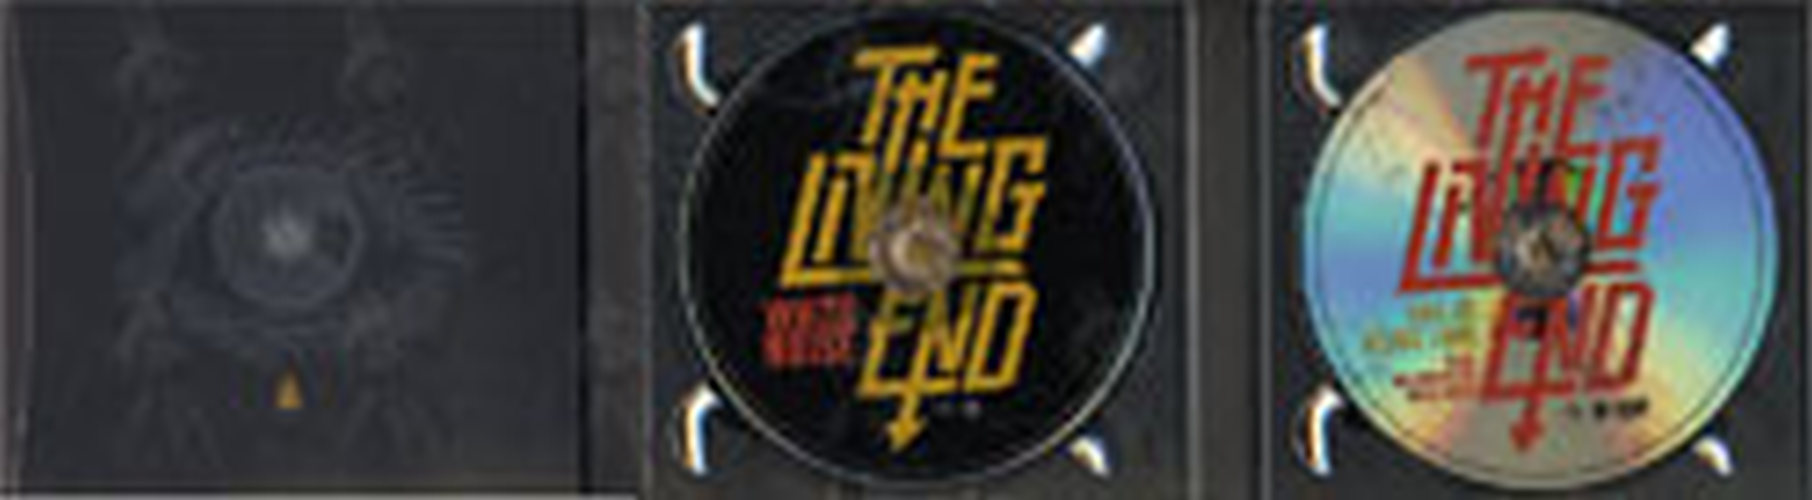 LIVING END-- THE - White Noise - 3